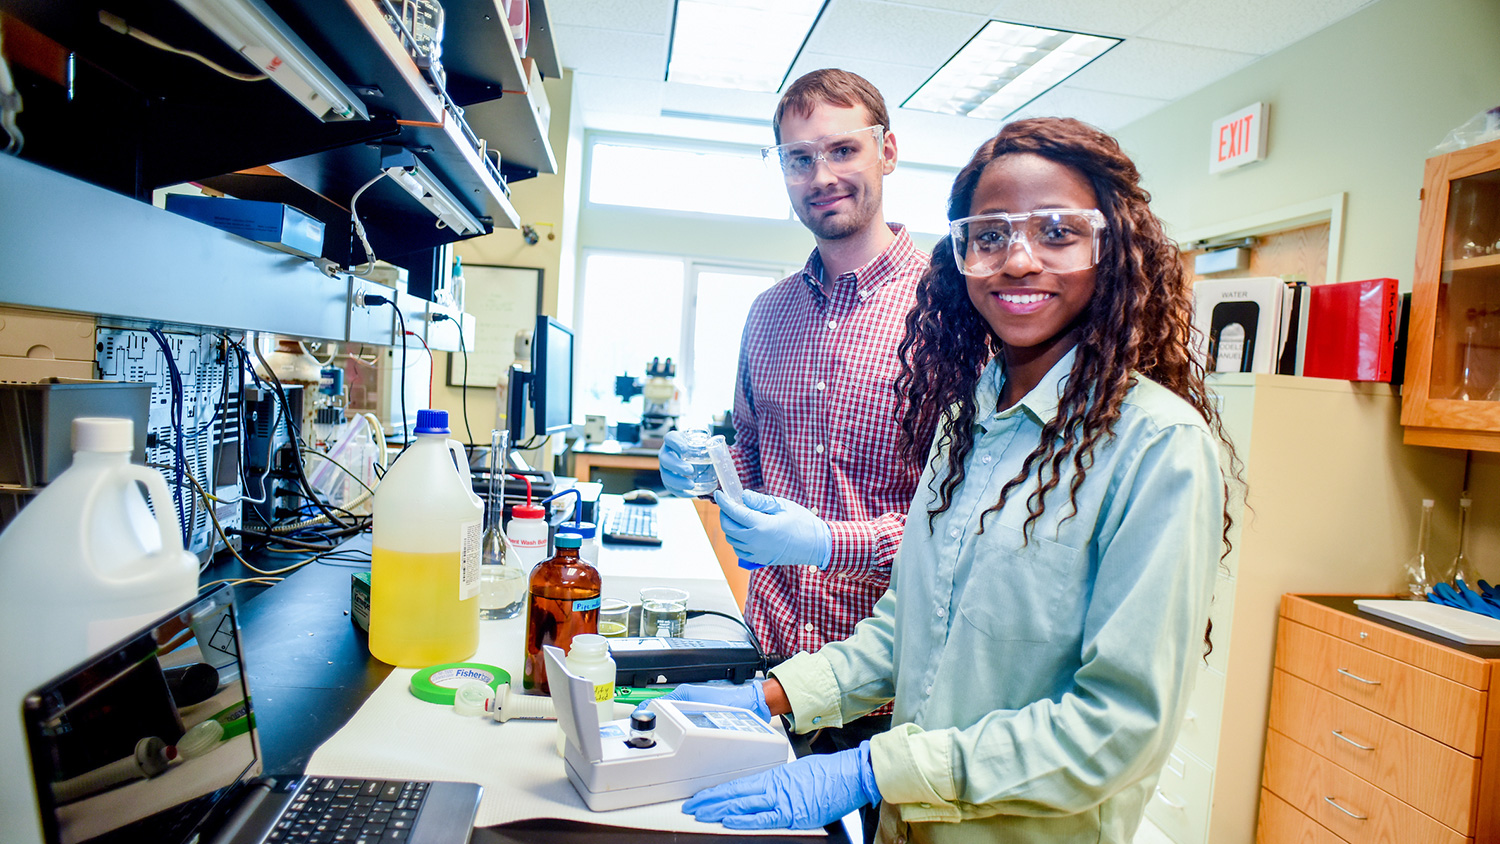 Students and faculty in the lab - Career Connections - College of Natural Resources at NC State University